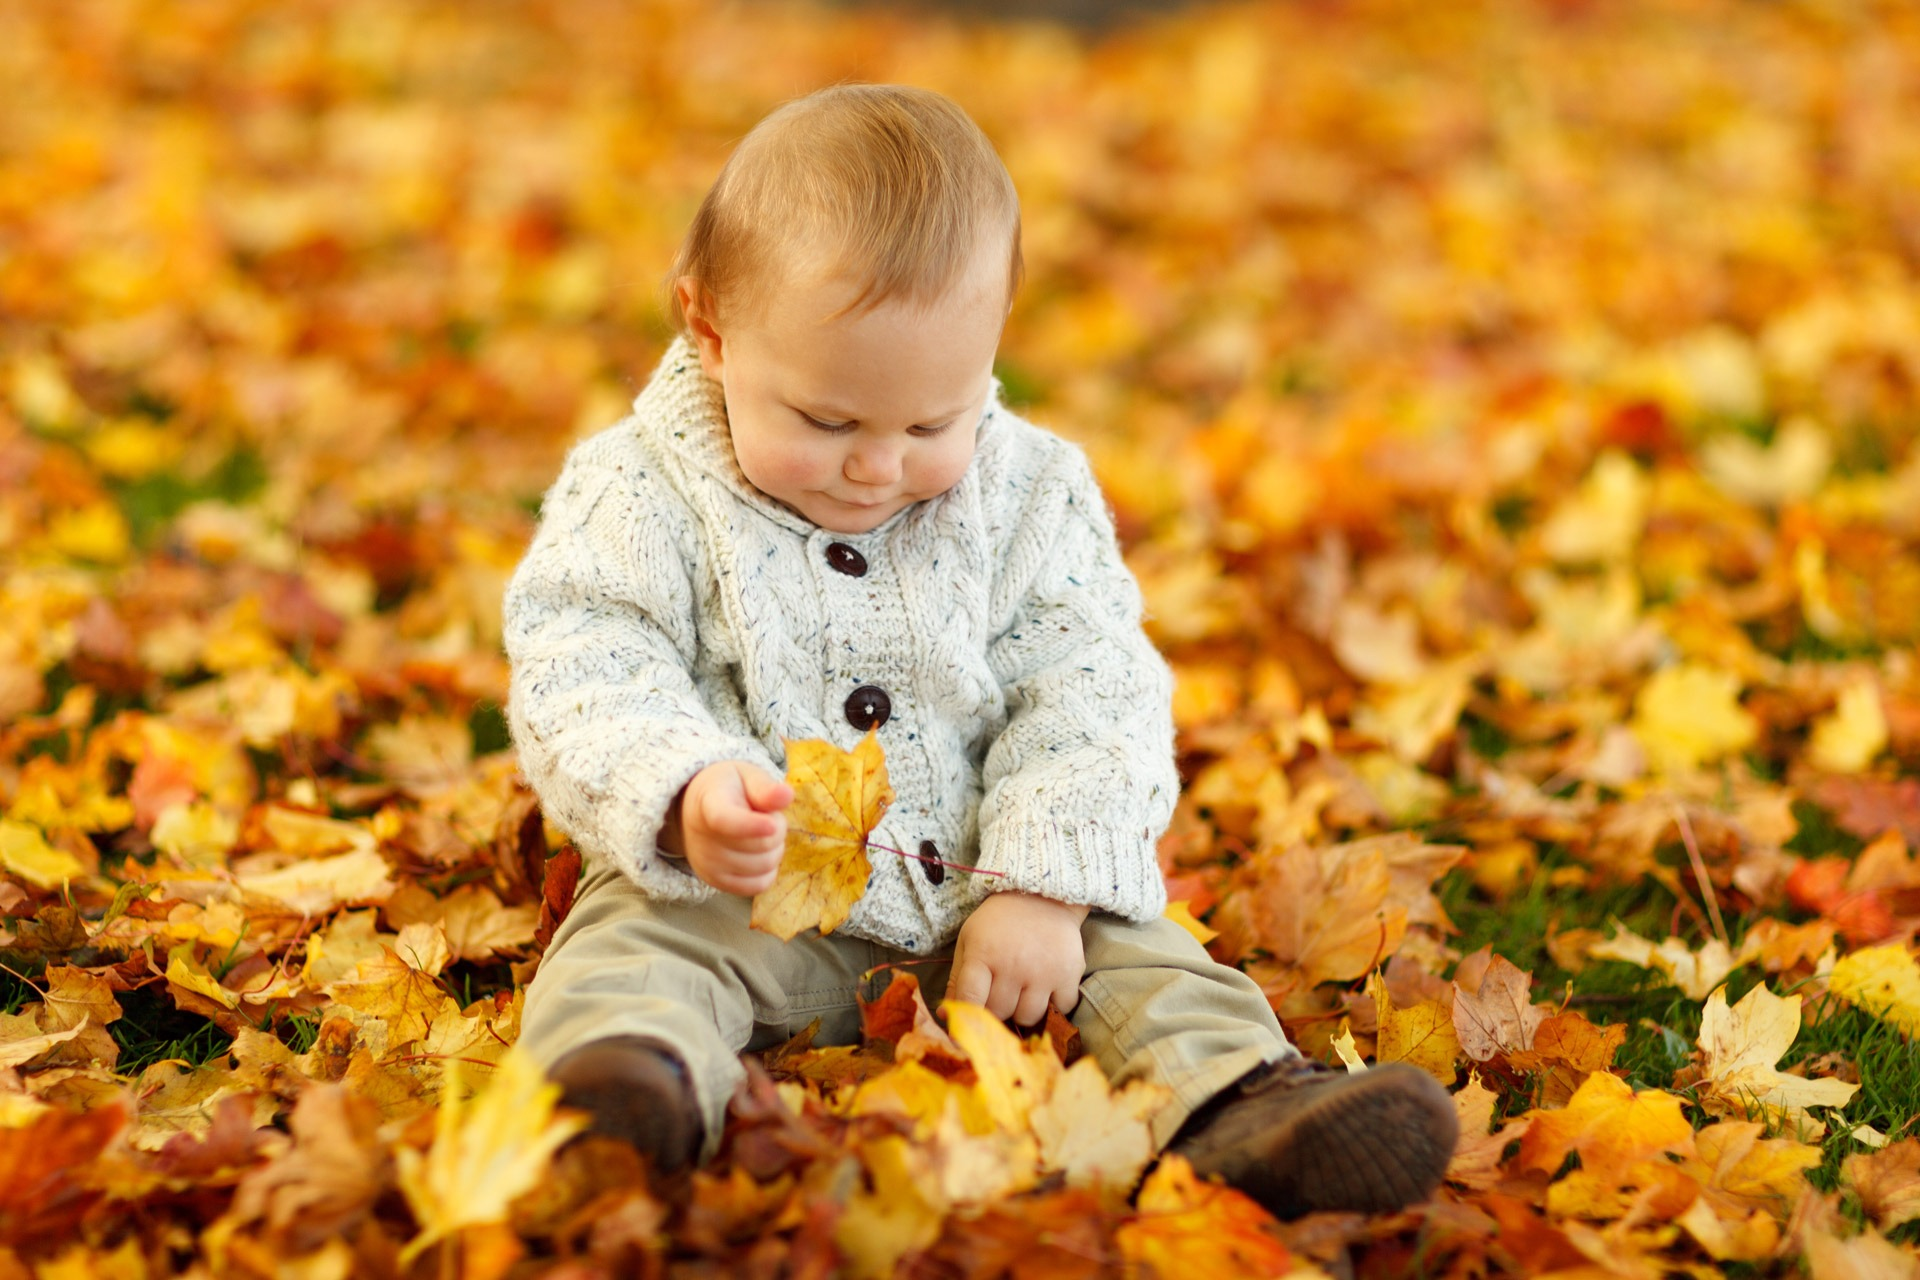 autumn-fall-baby-boy-child-40893